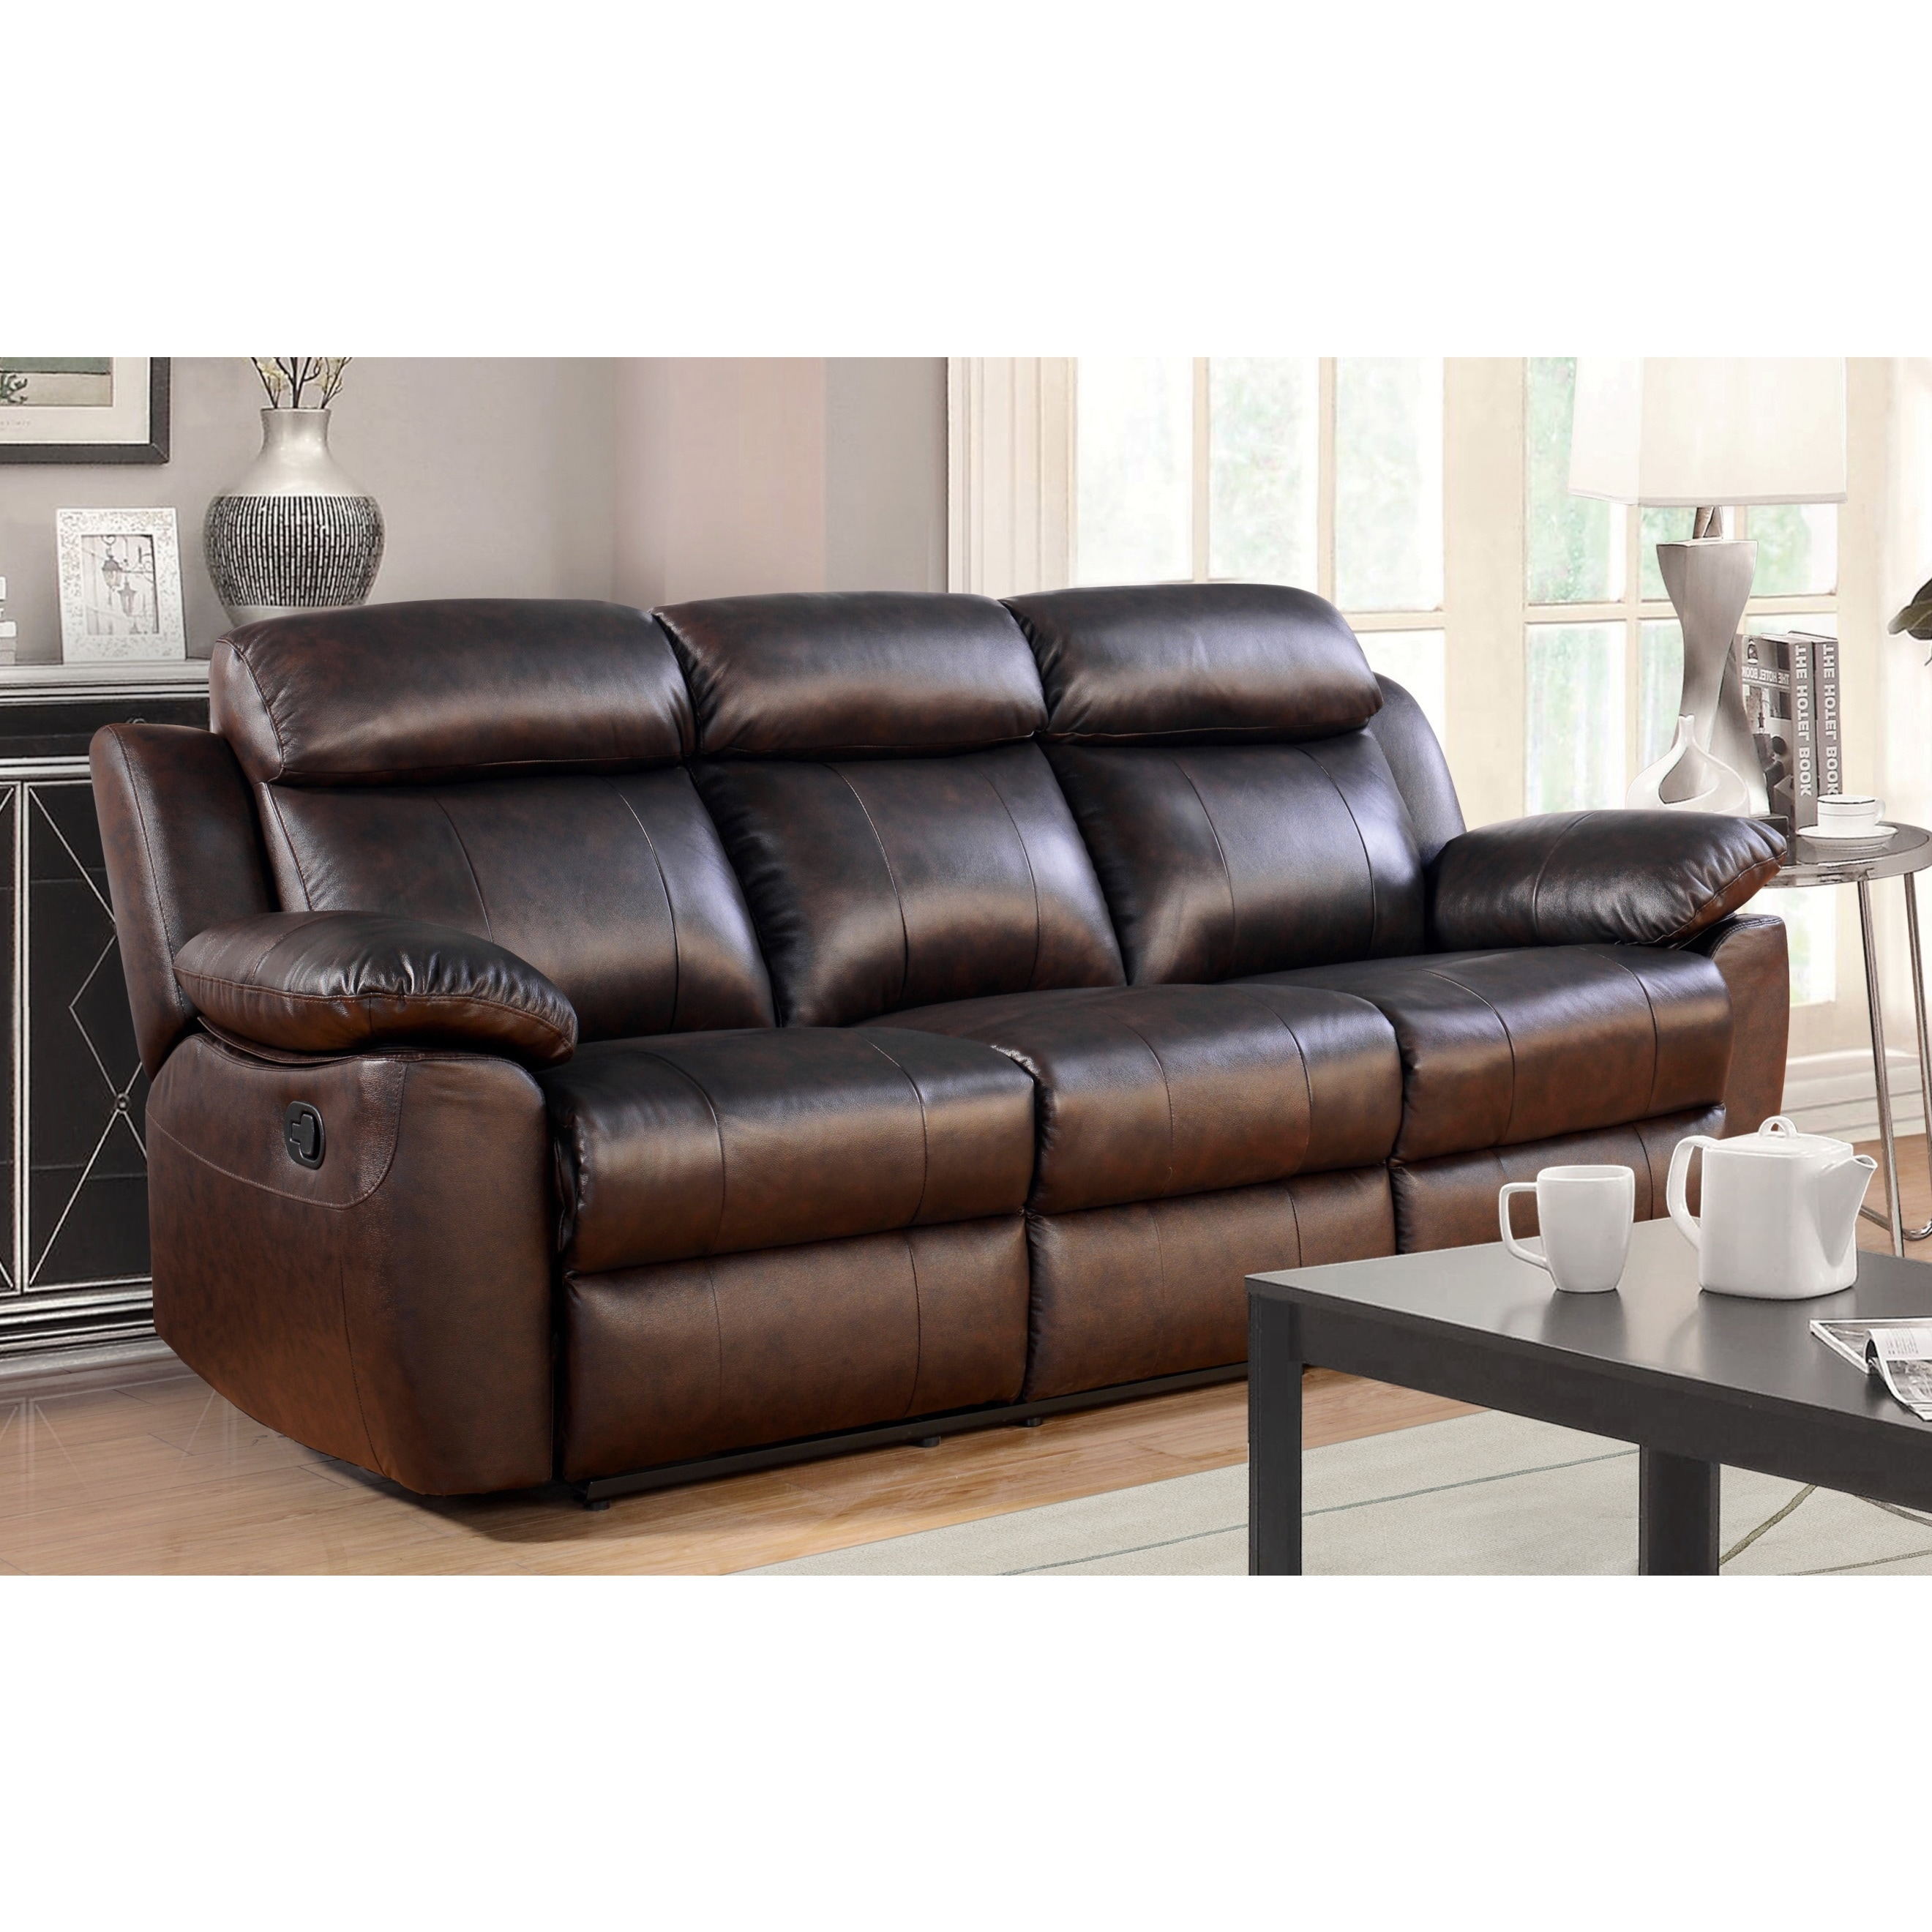 Leather Living Room Furnitures Shop Abbyson Braylen 3 Piece Top Grain Leather Reclining Living